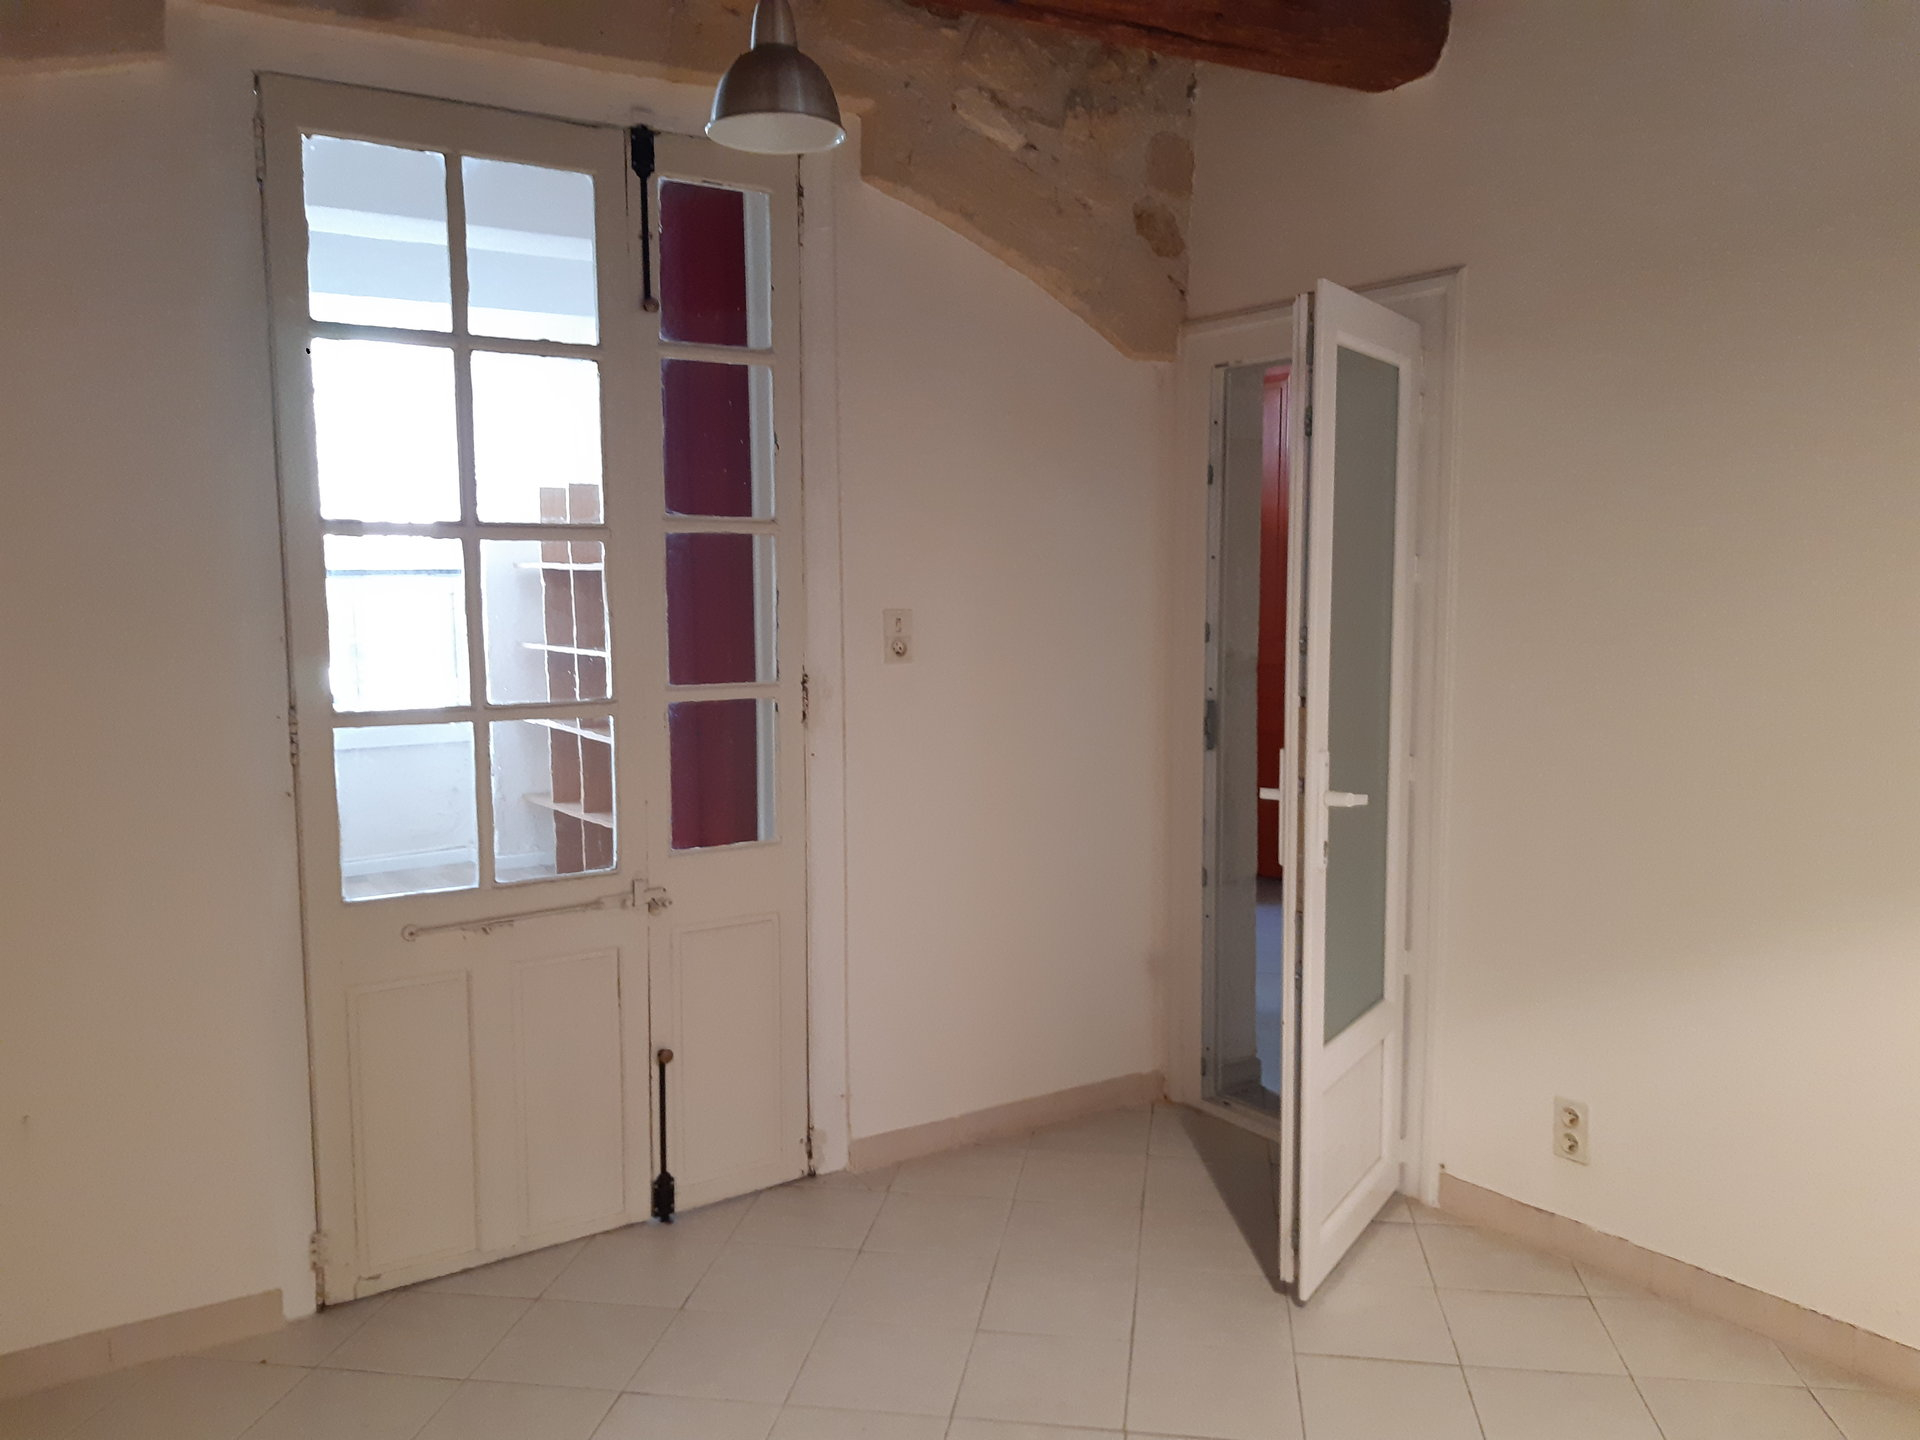 Location Fonds de commerce TARASCON surface habitable de 55 m²